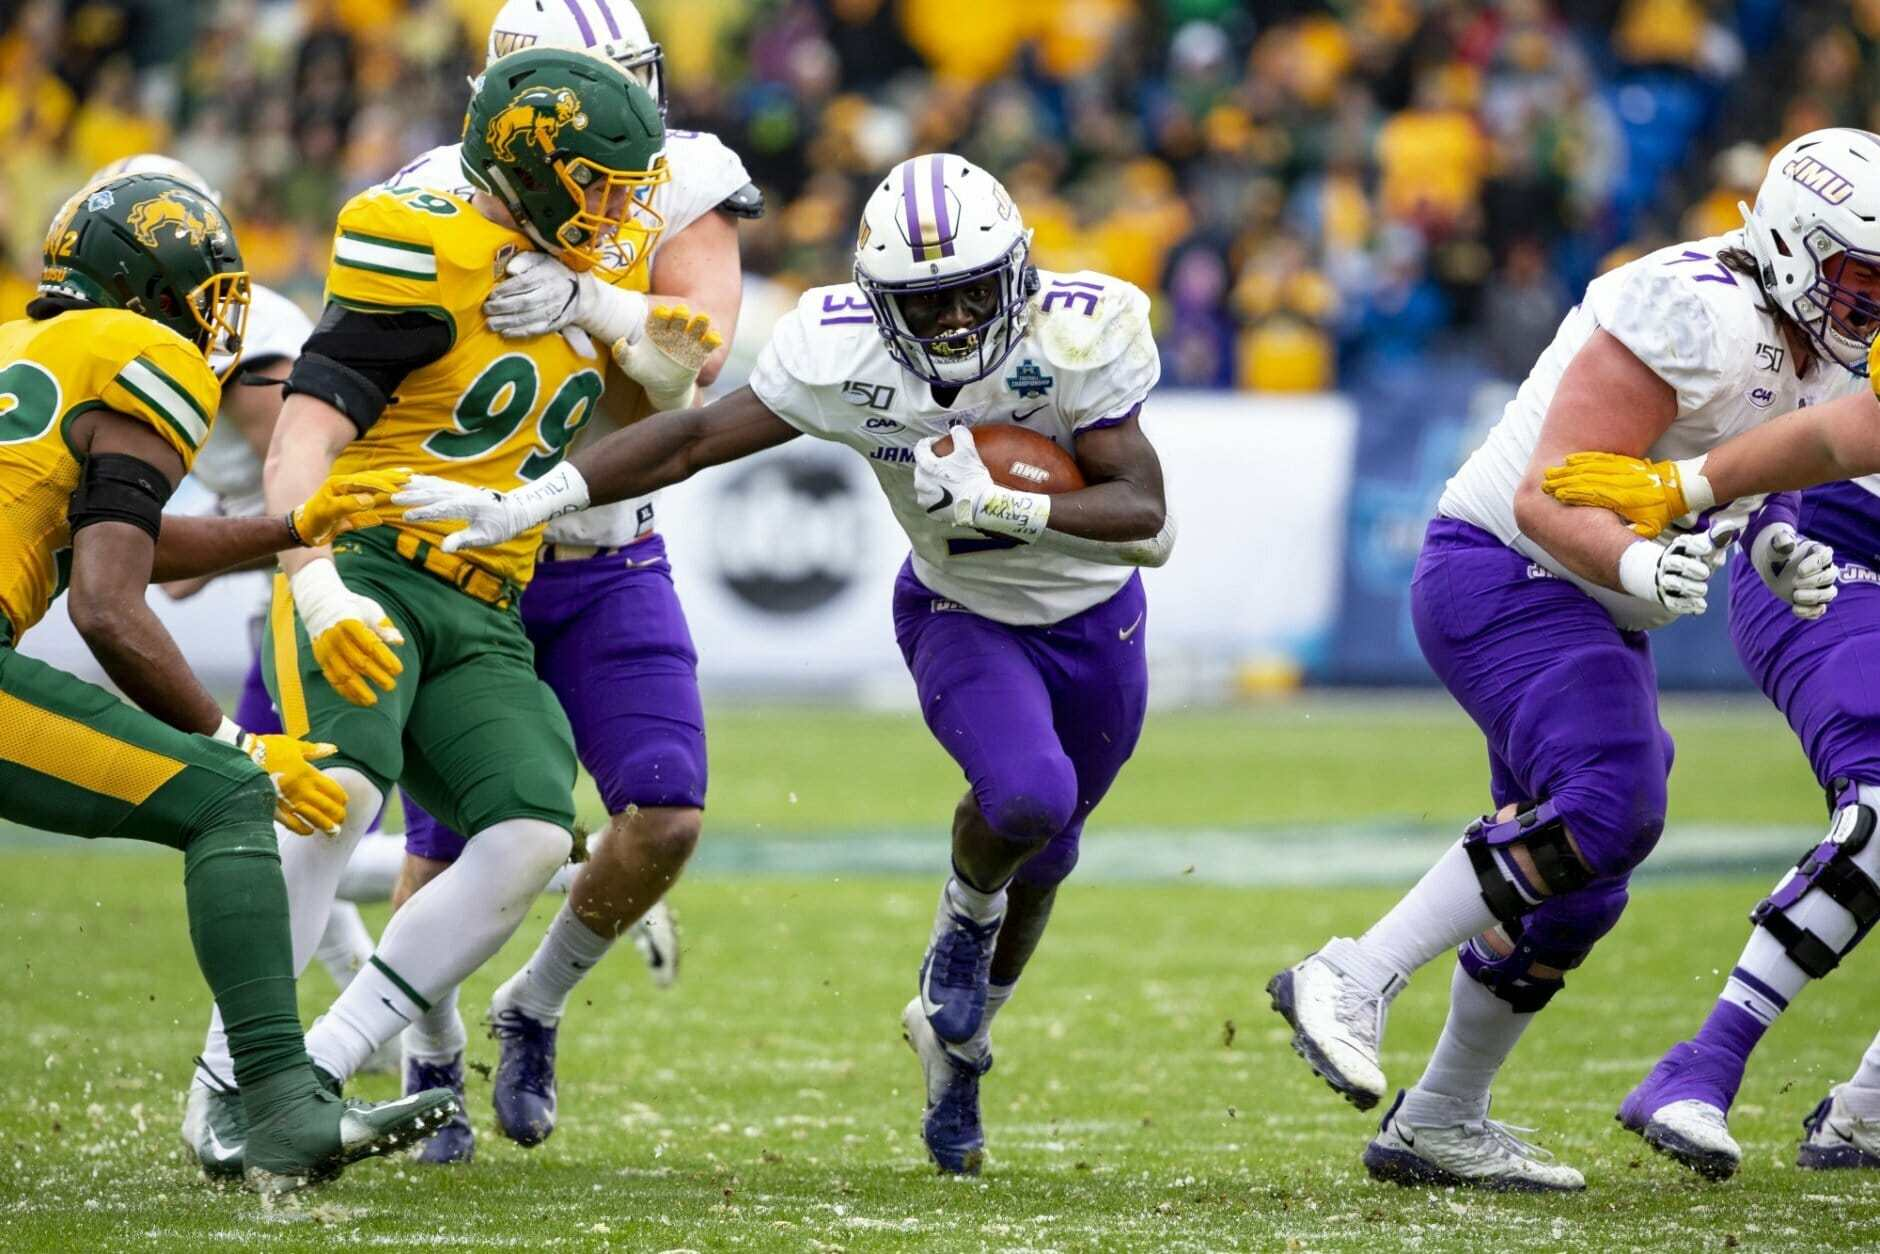 FCS Football 2021 Schedule, Odds and Picks For Every Week 2 Game